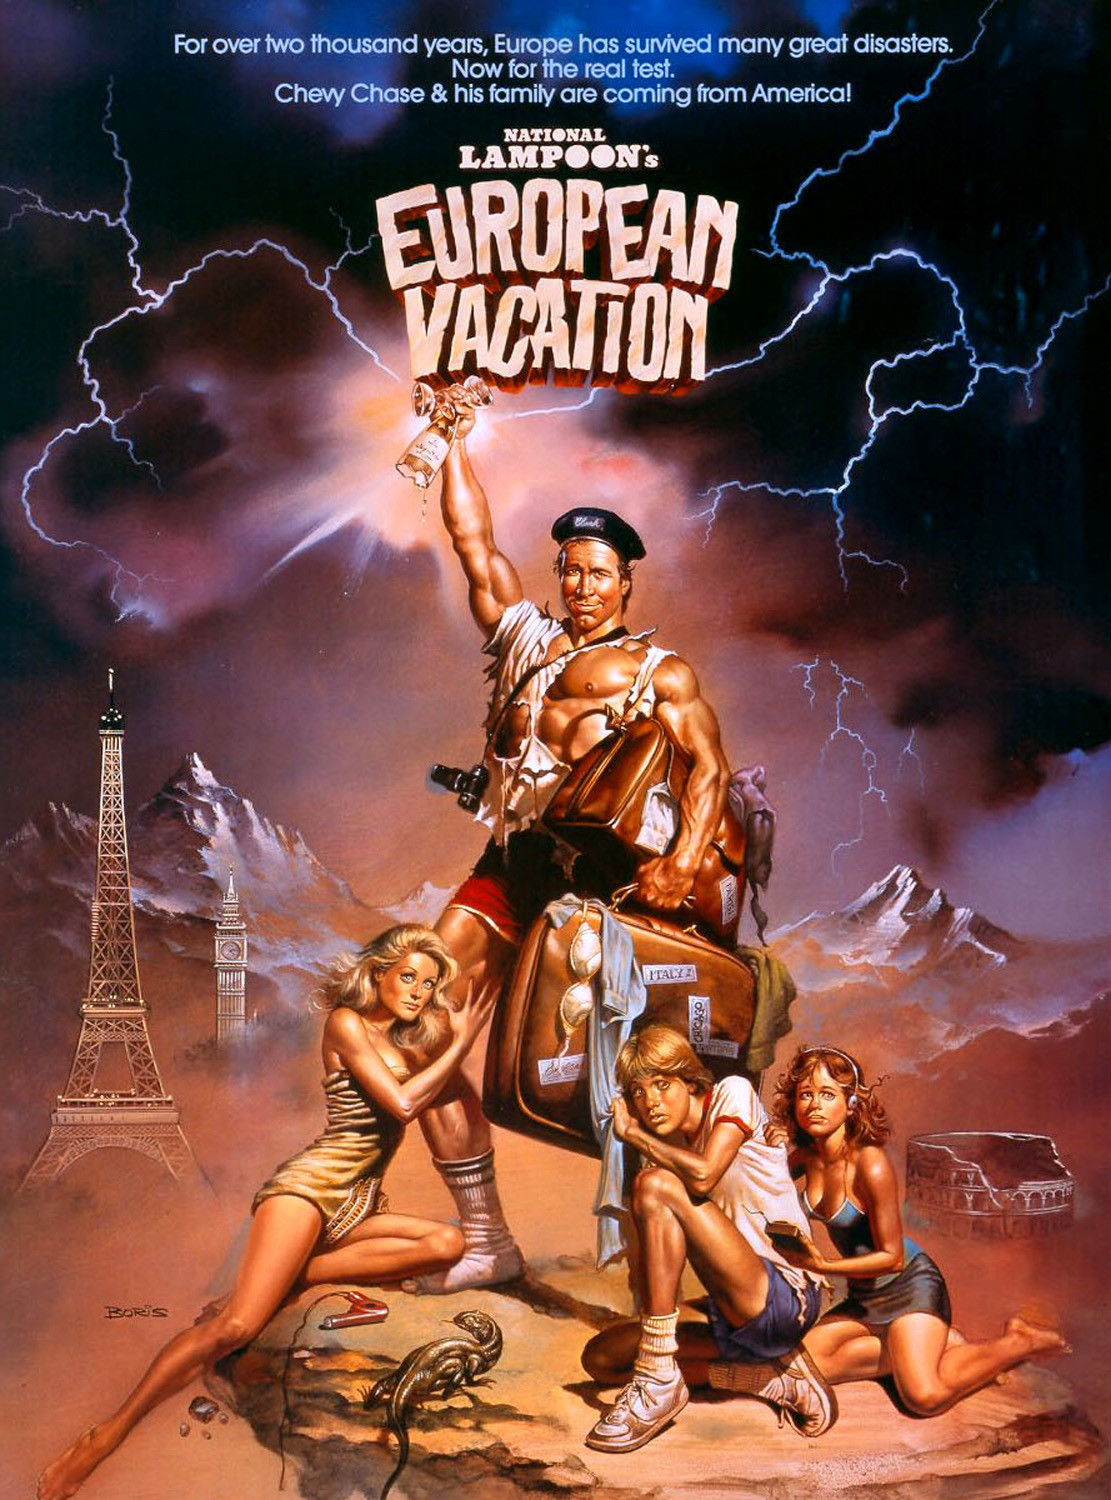 September 27th, 2012: National Lampoon's European Vacation